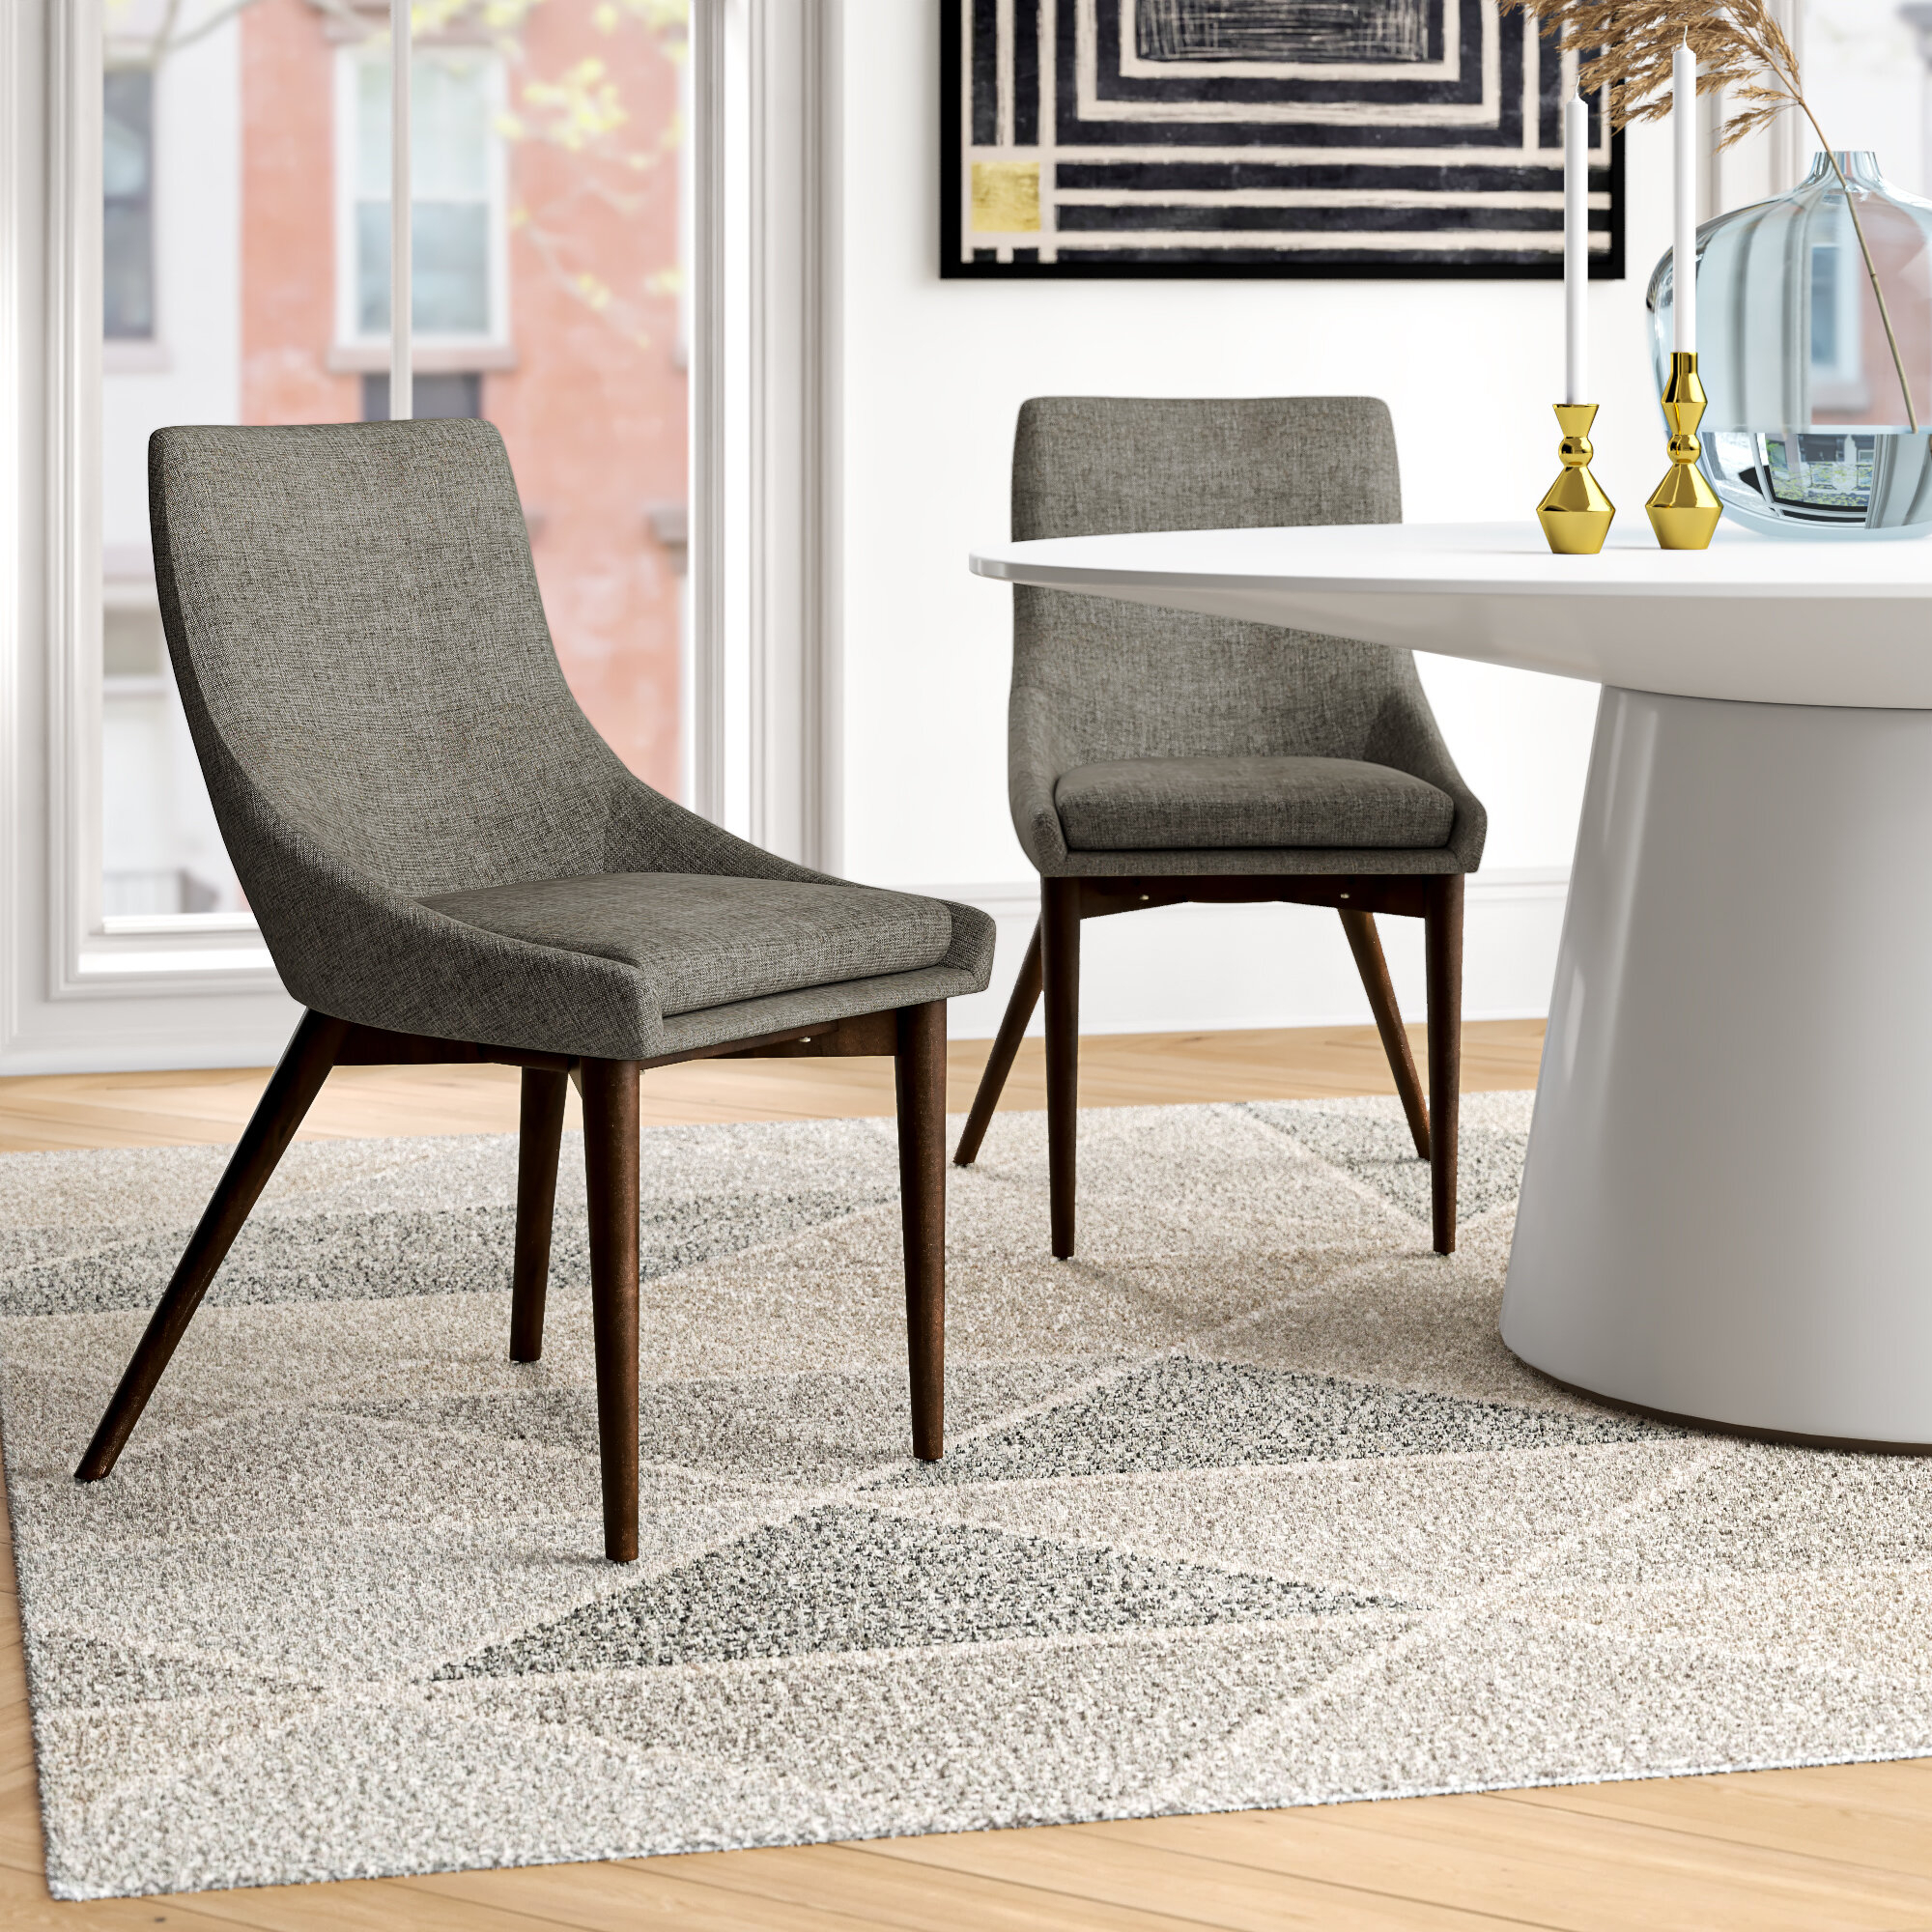 Aaliyah Cotton Upholstered Side Chair In Gray Throughout Aaliyah Parsons Chairs (View 2 of 15)